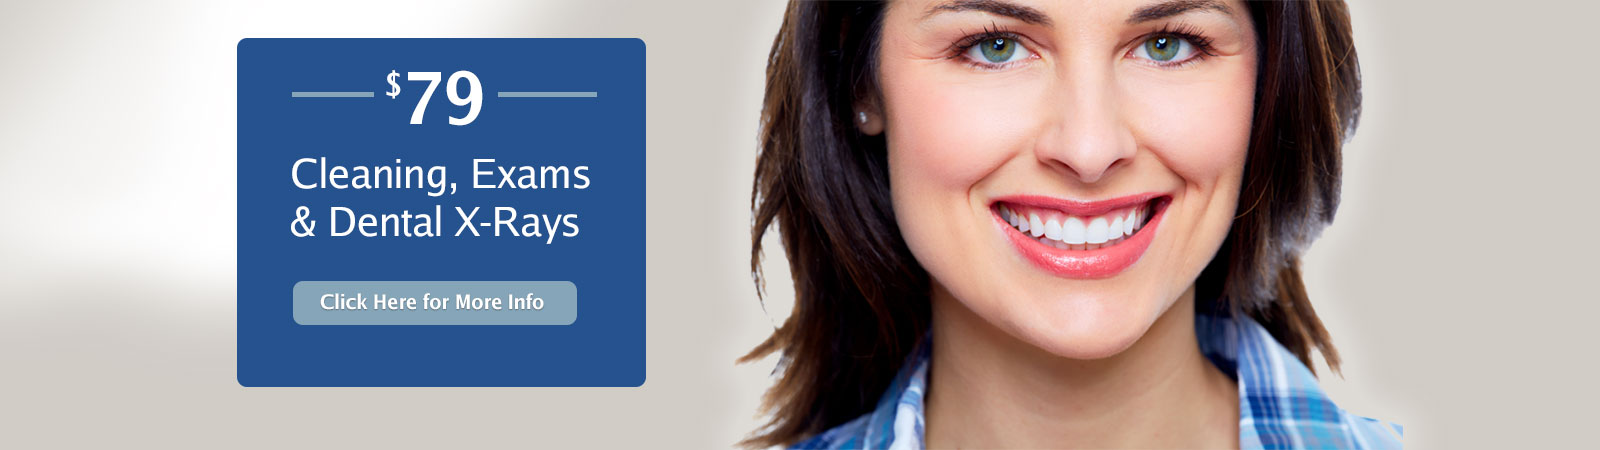 Special Offer from Bomstad Dental Office in Hopkins, MN